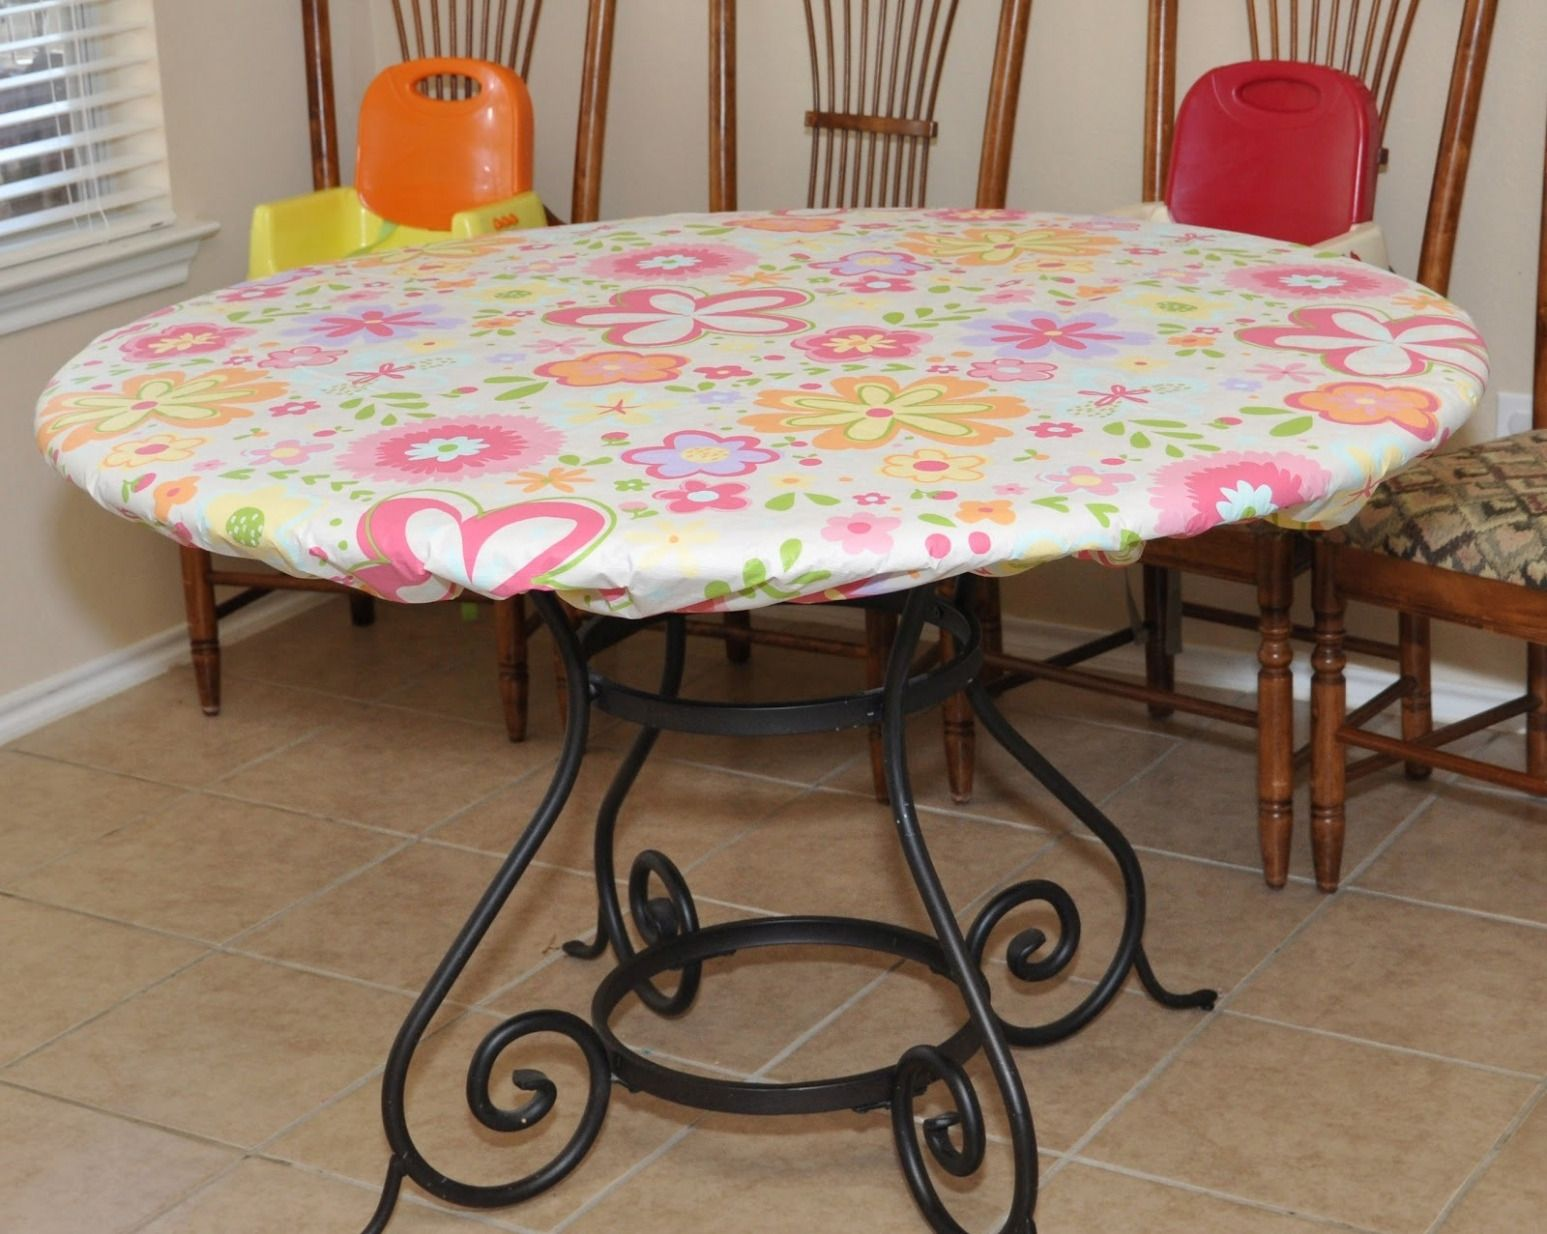 100 Round Plastic Table Covers With Elastic Cool Modern